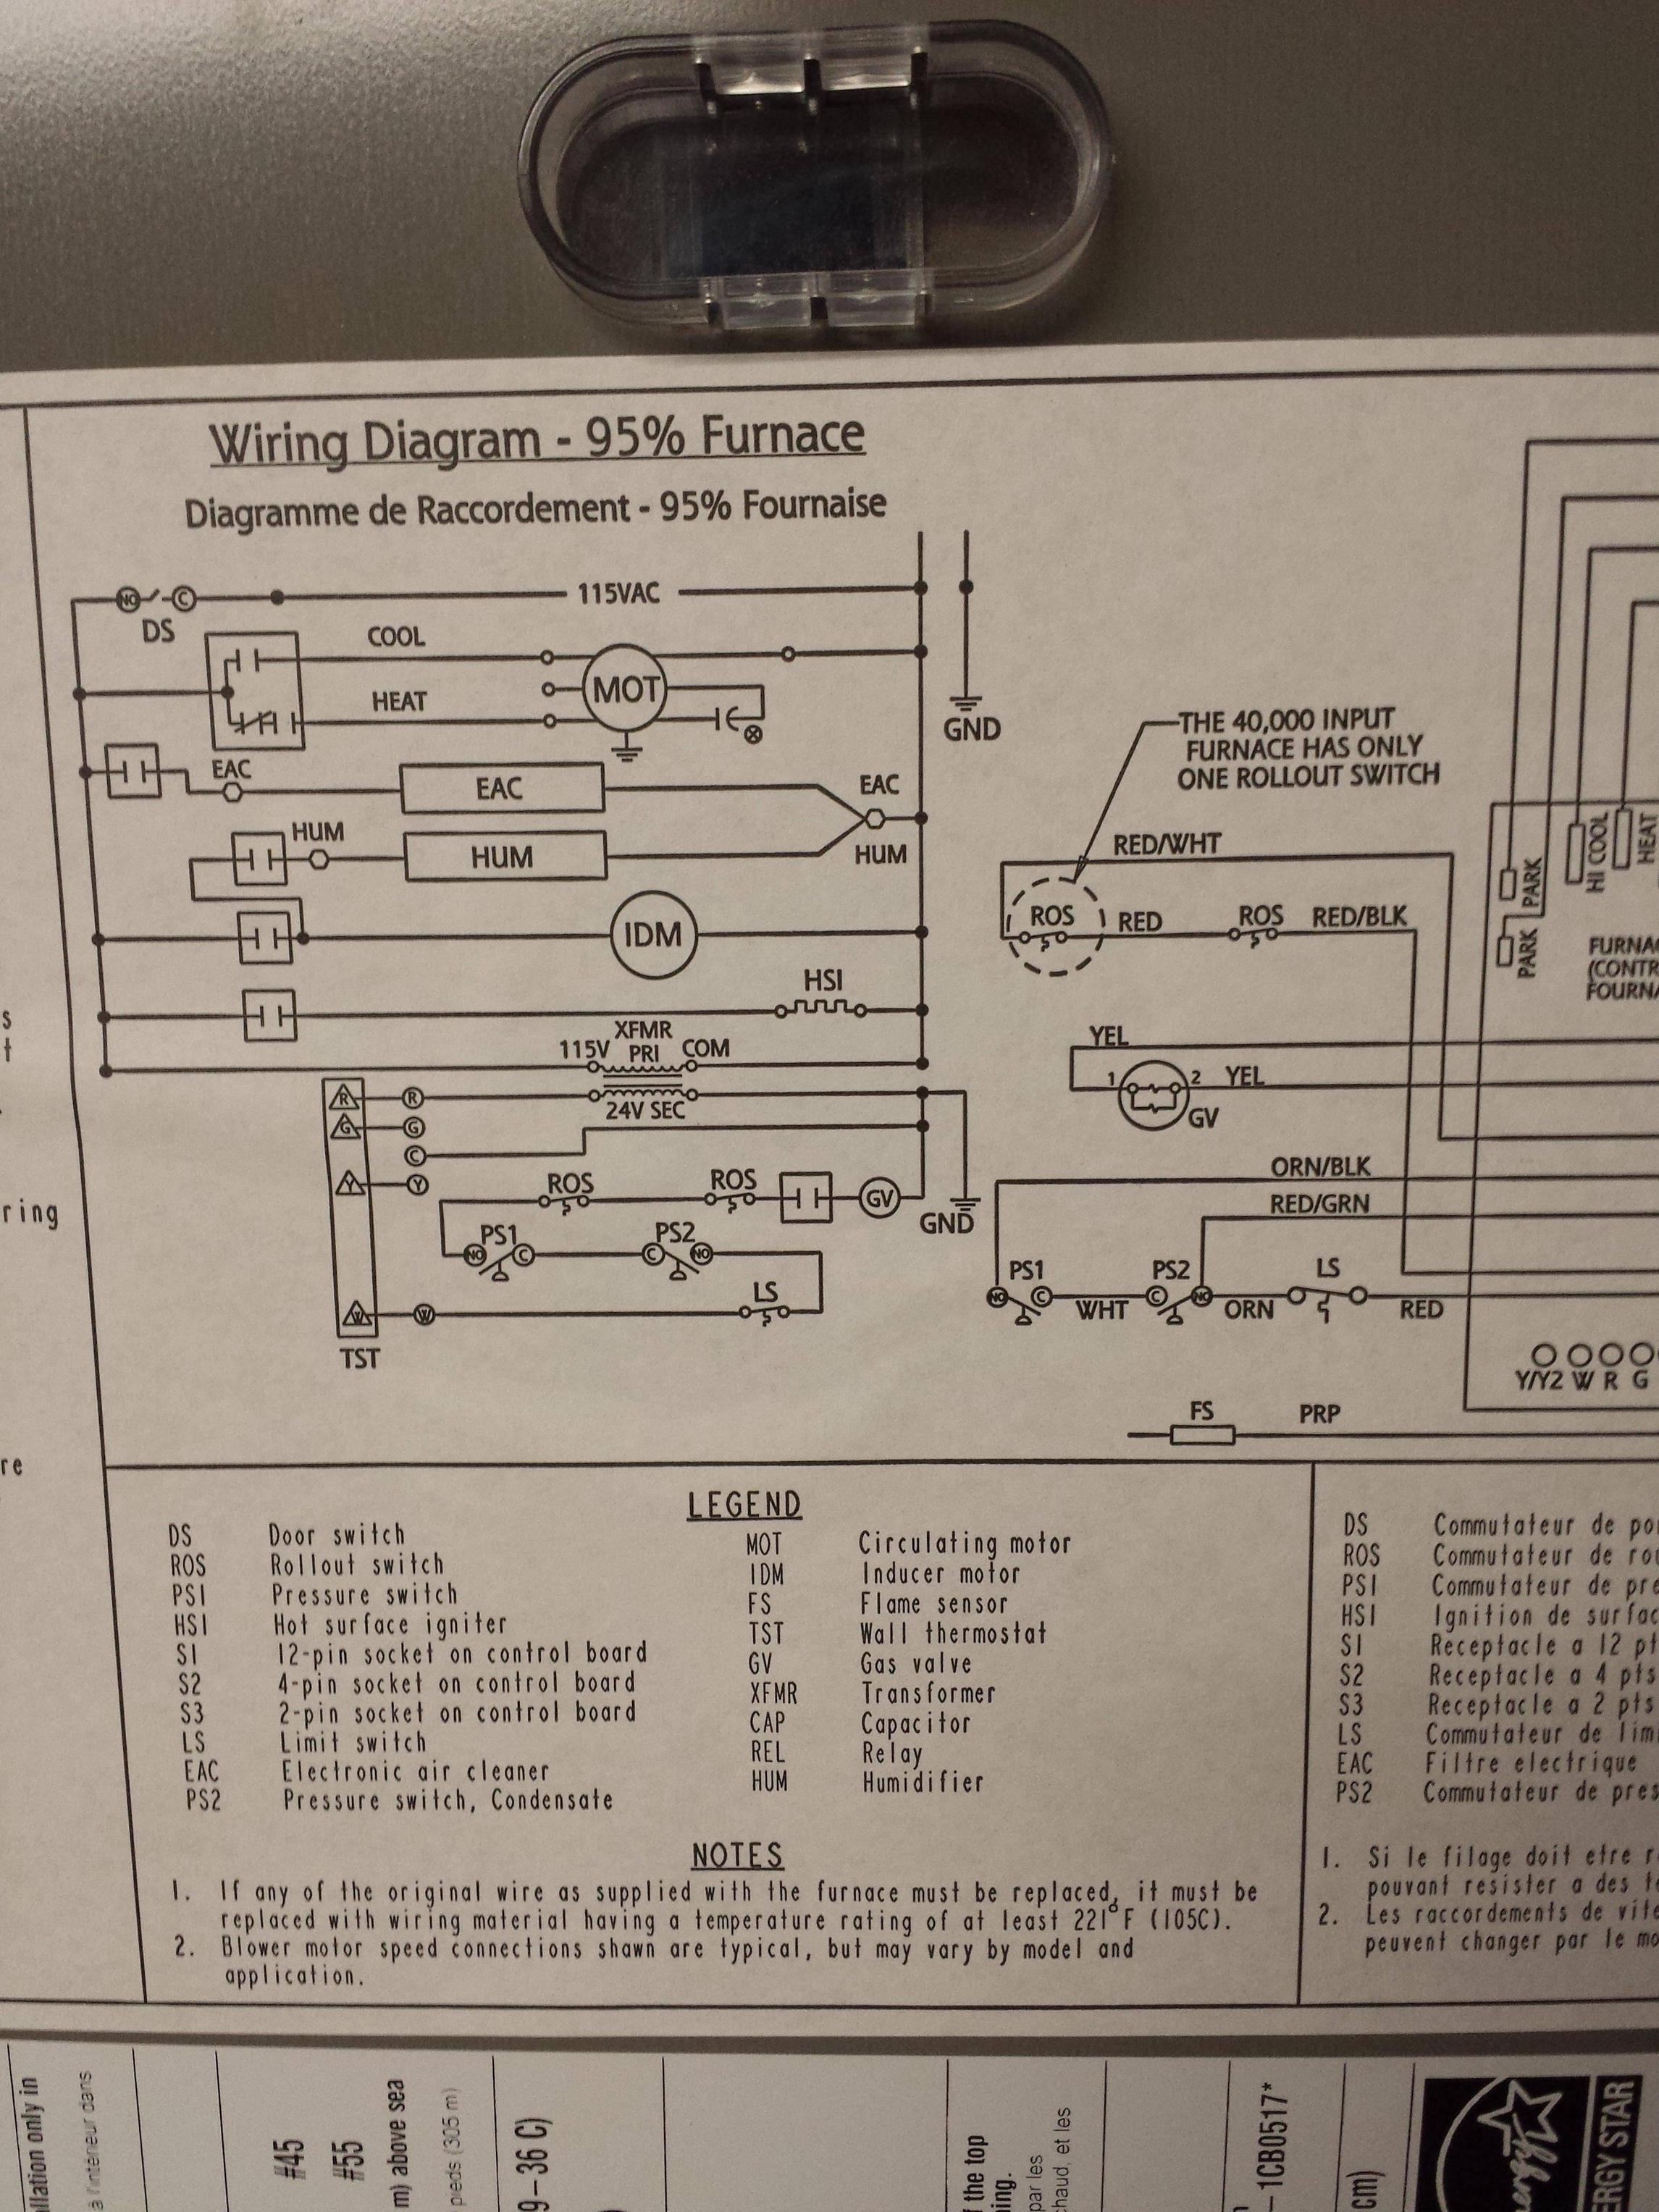 Home Automation Wiring Diagram Hvac How Can I Modify A 4 Wire Thermostat To A New